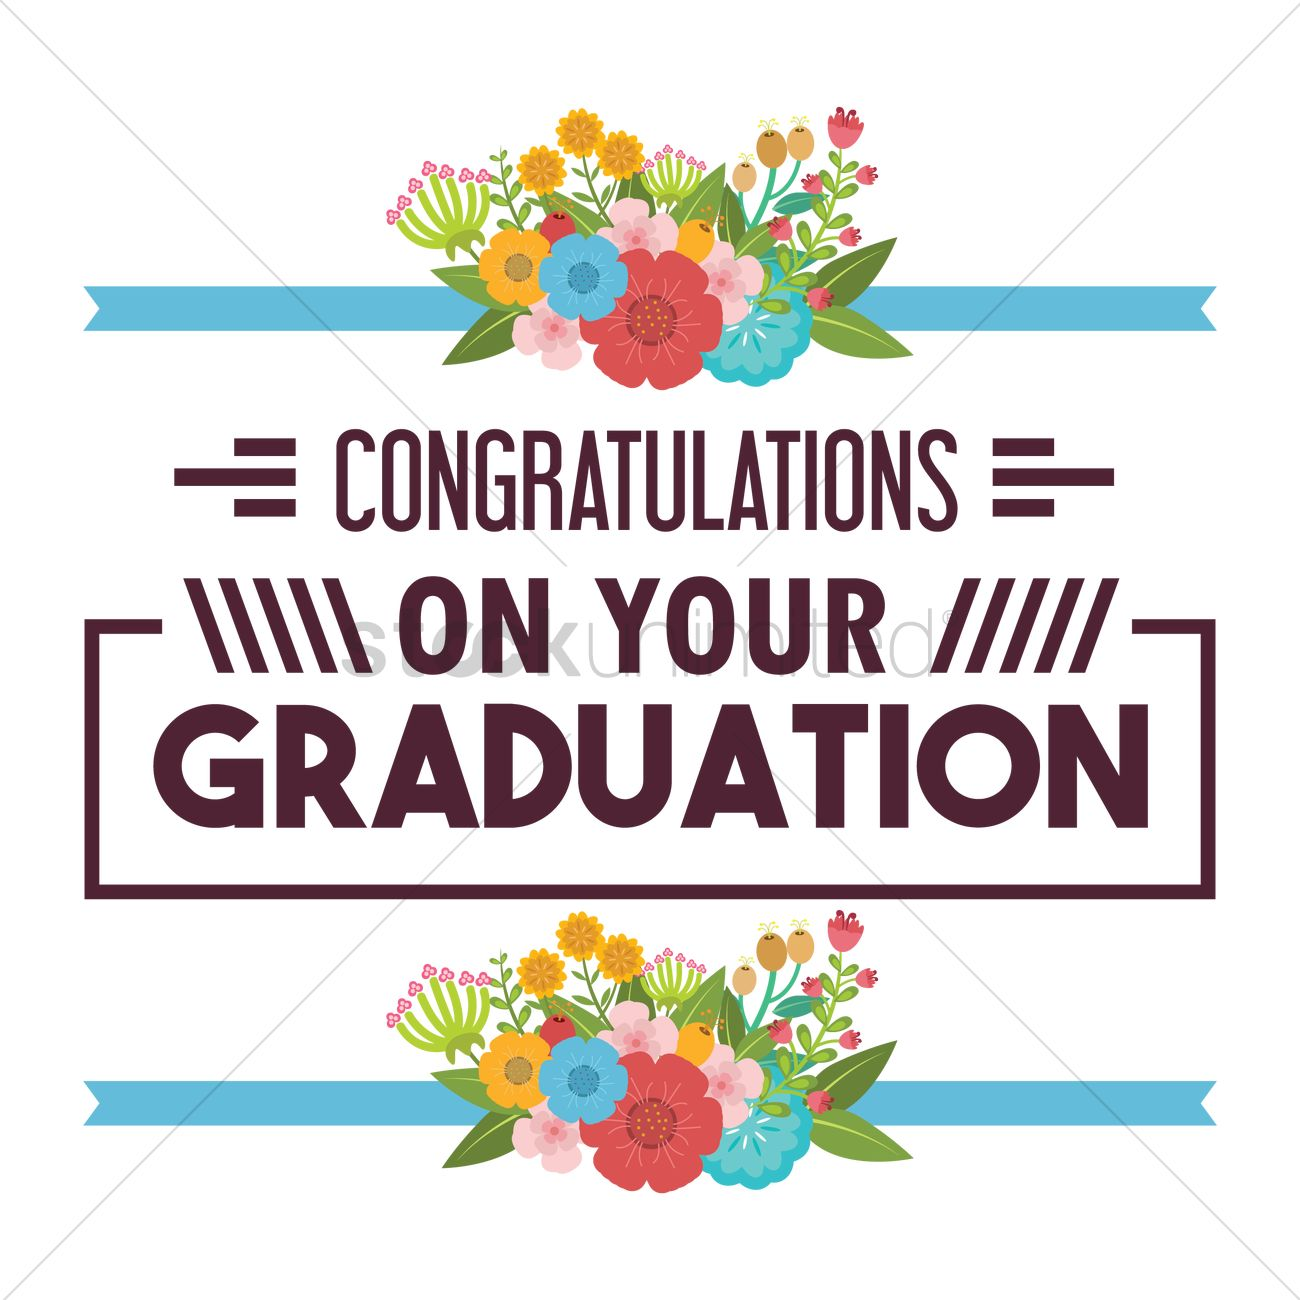 Congratulations On Your Graduation Vector Image 1797296